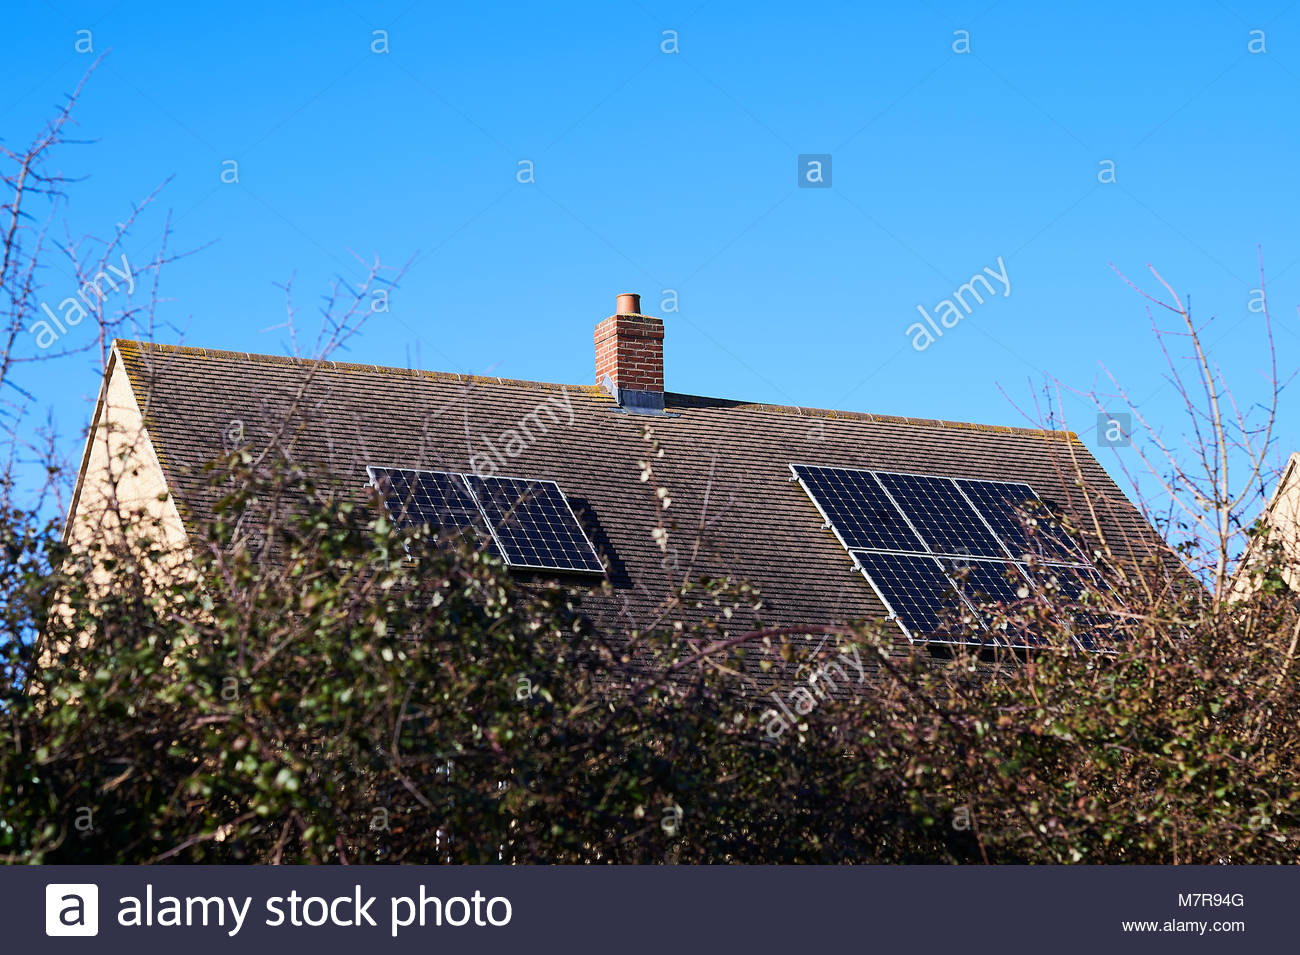 Solar panels on roof of house in Stonesfield in Oxfordshire in the Cotswolds - Stock Image